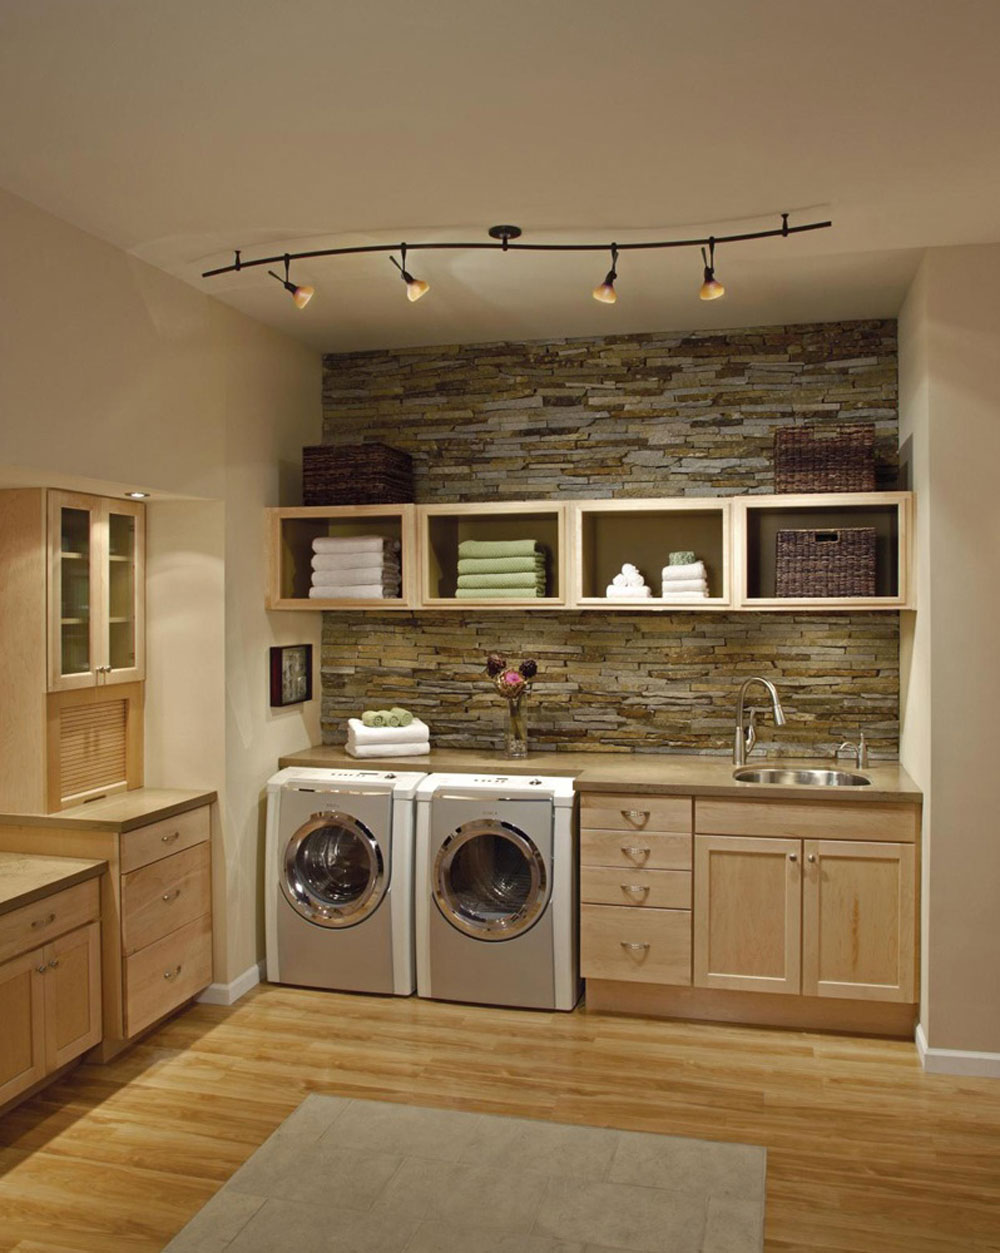 Laundry Room Ideas For A Clean House - Clean washing machine ideas